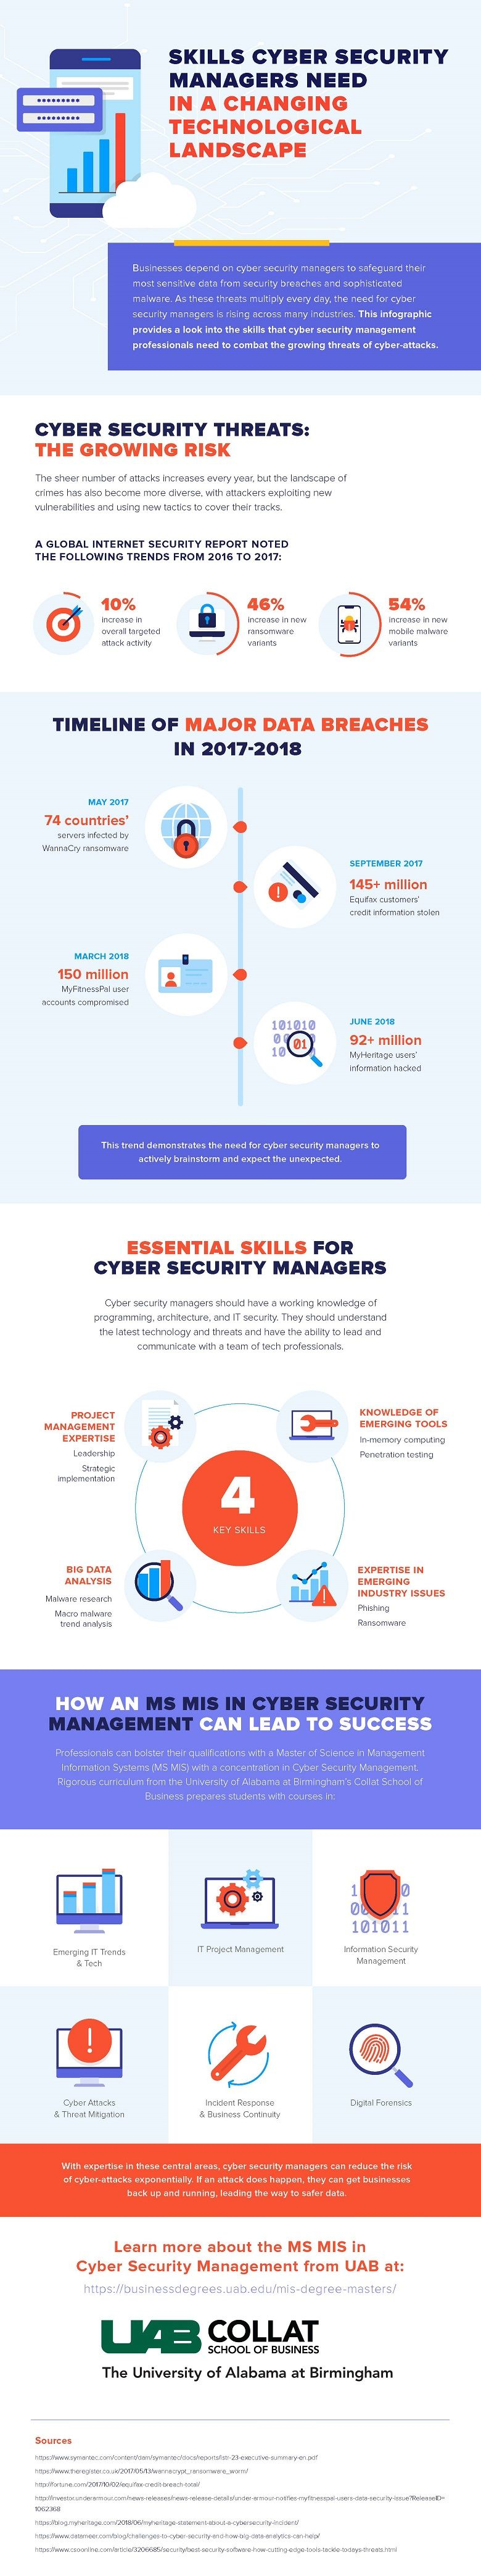 An infographic by the UAB Collat School of Business about the skills cyber security managers need to protect organizations from cyber threats.